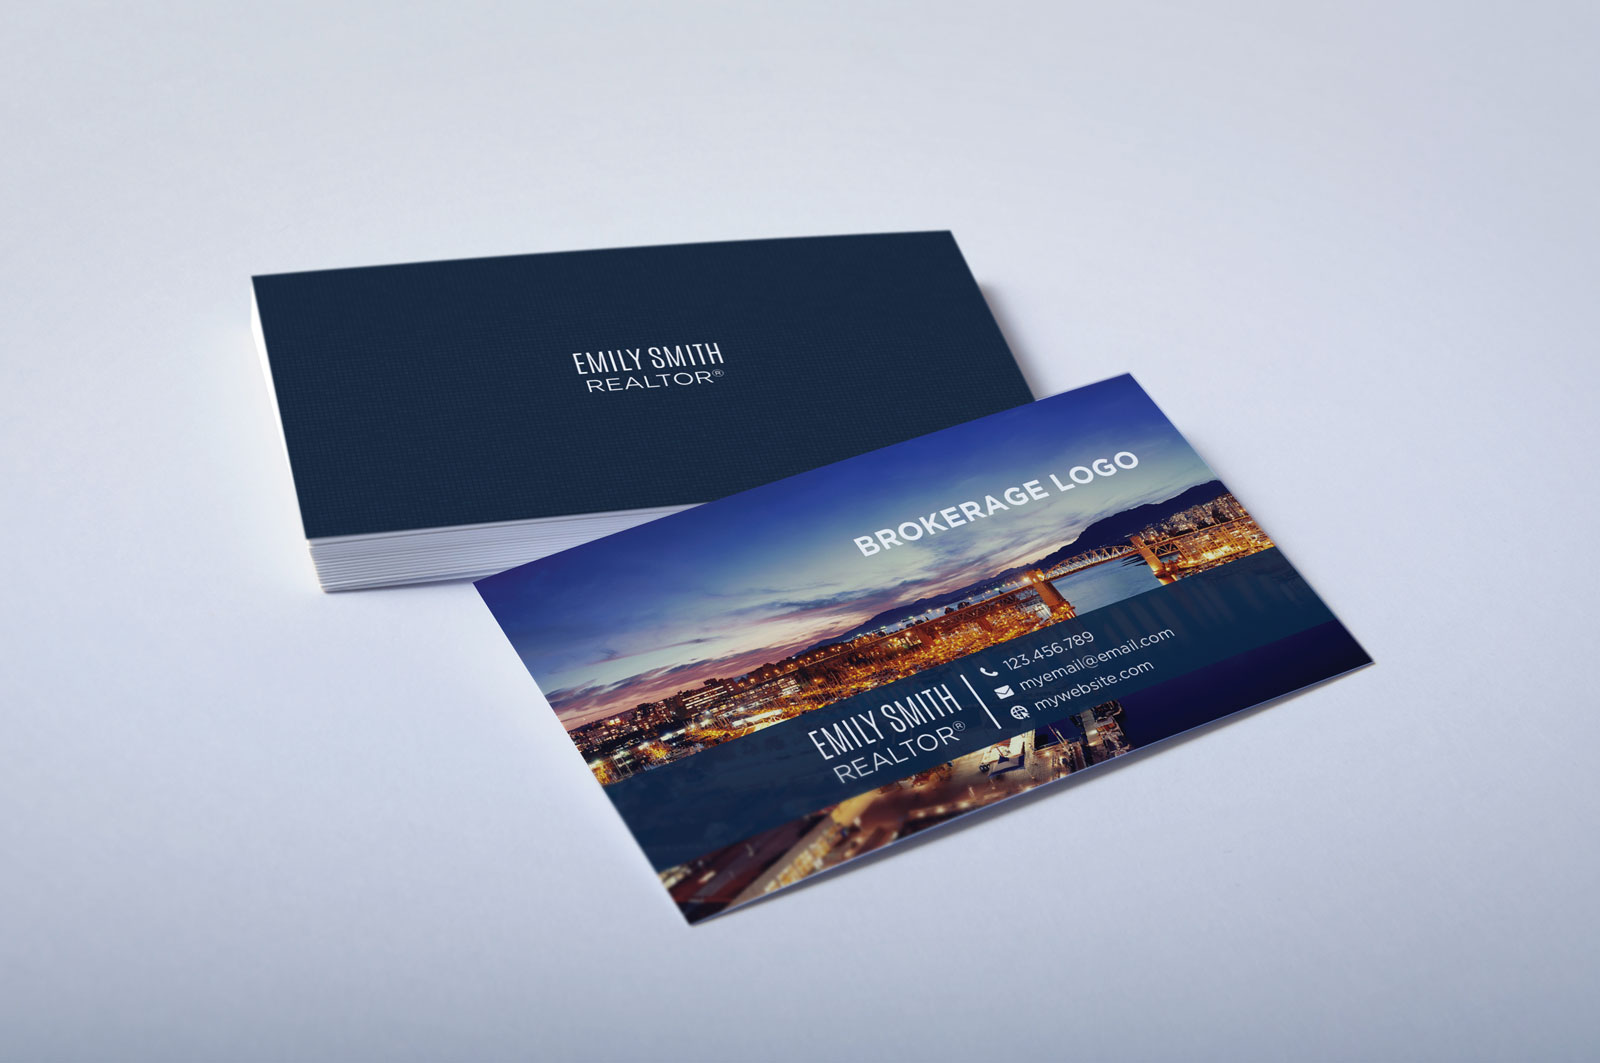 Free Real Estate Agent Business Card Download #1